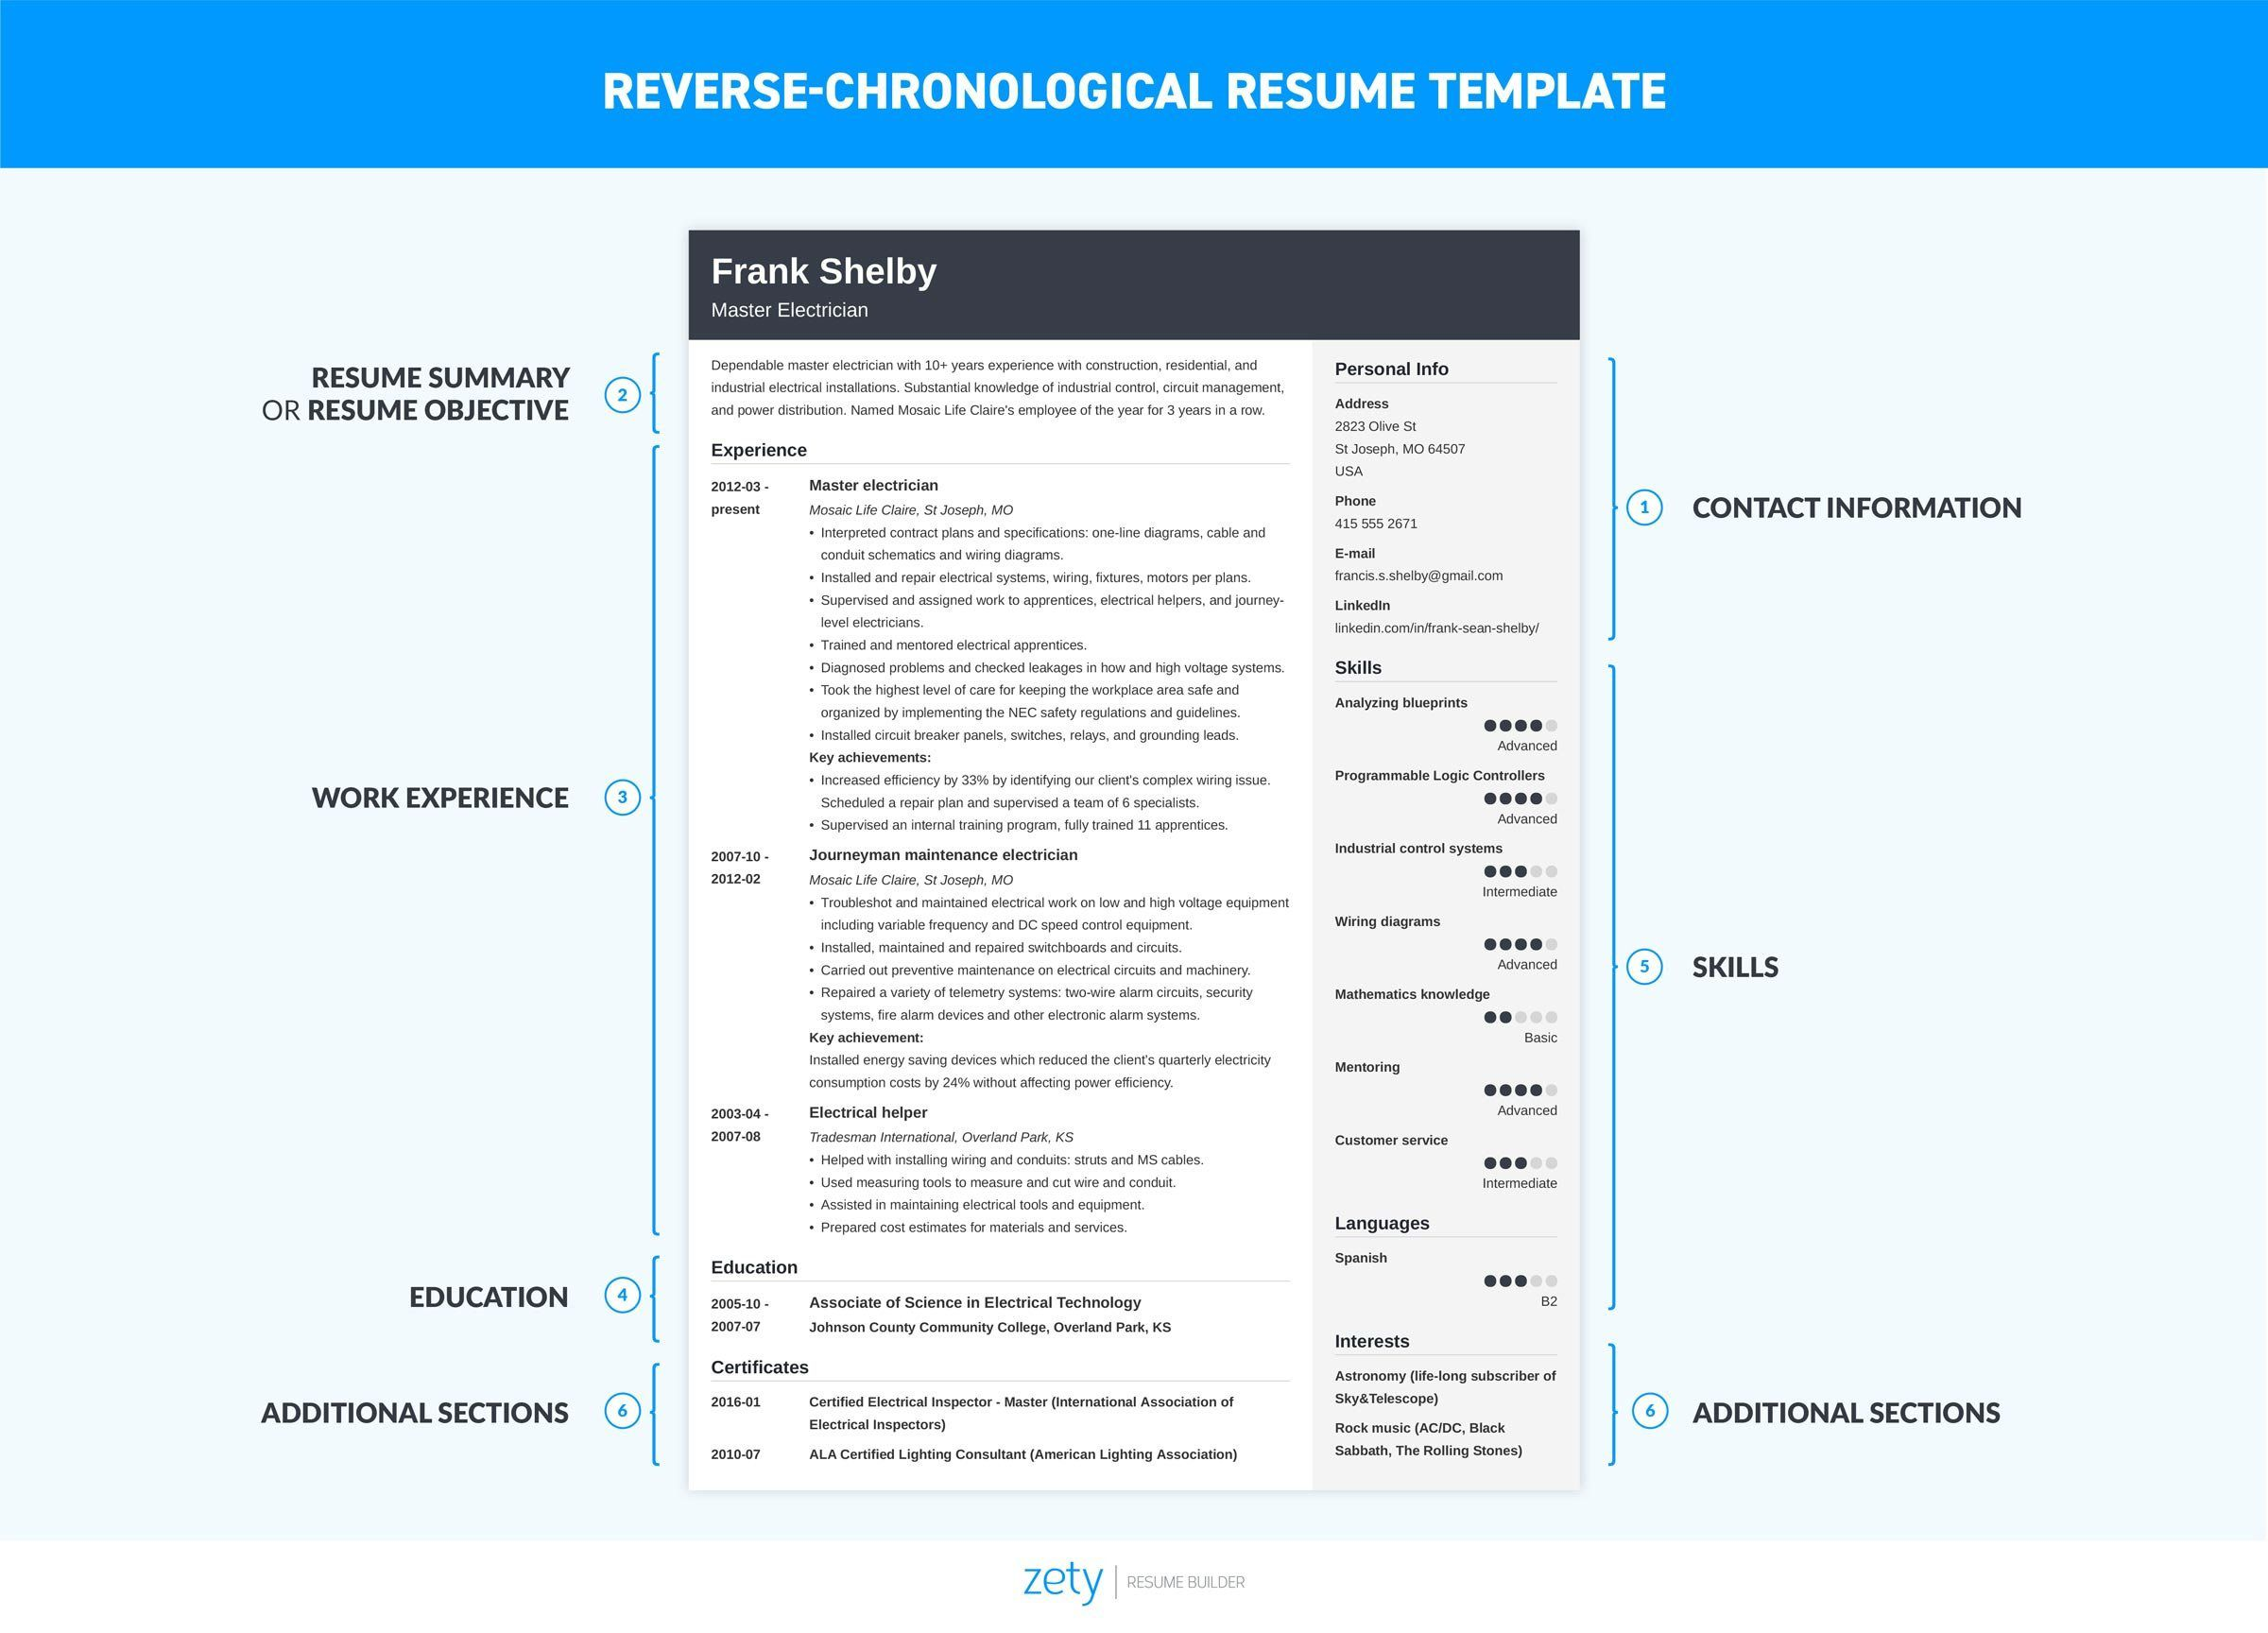 006 Dreaded Free Chronological Resume Template Idea  2020 CvFull